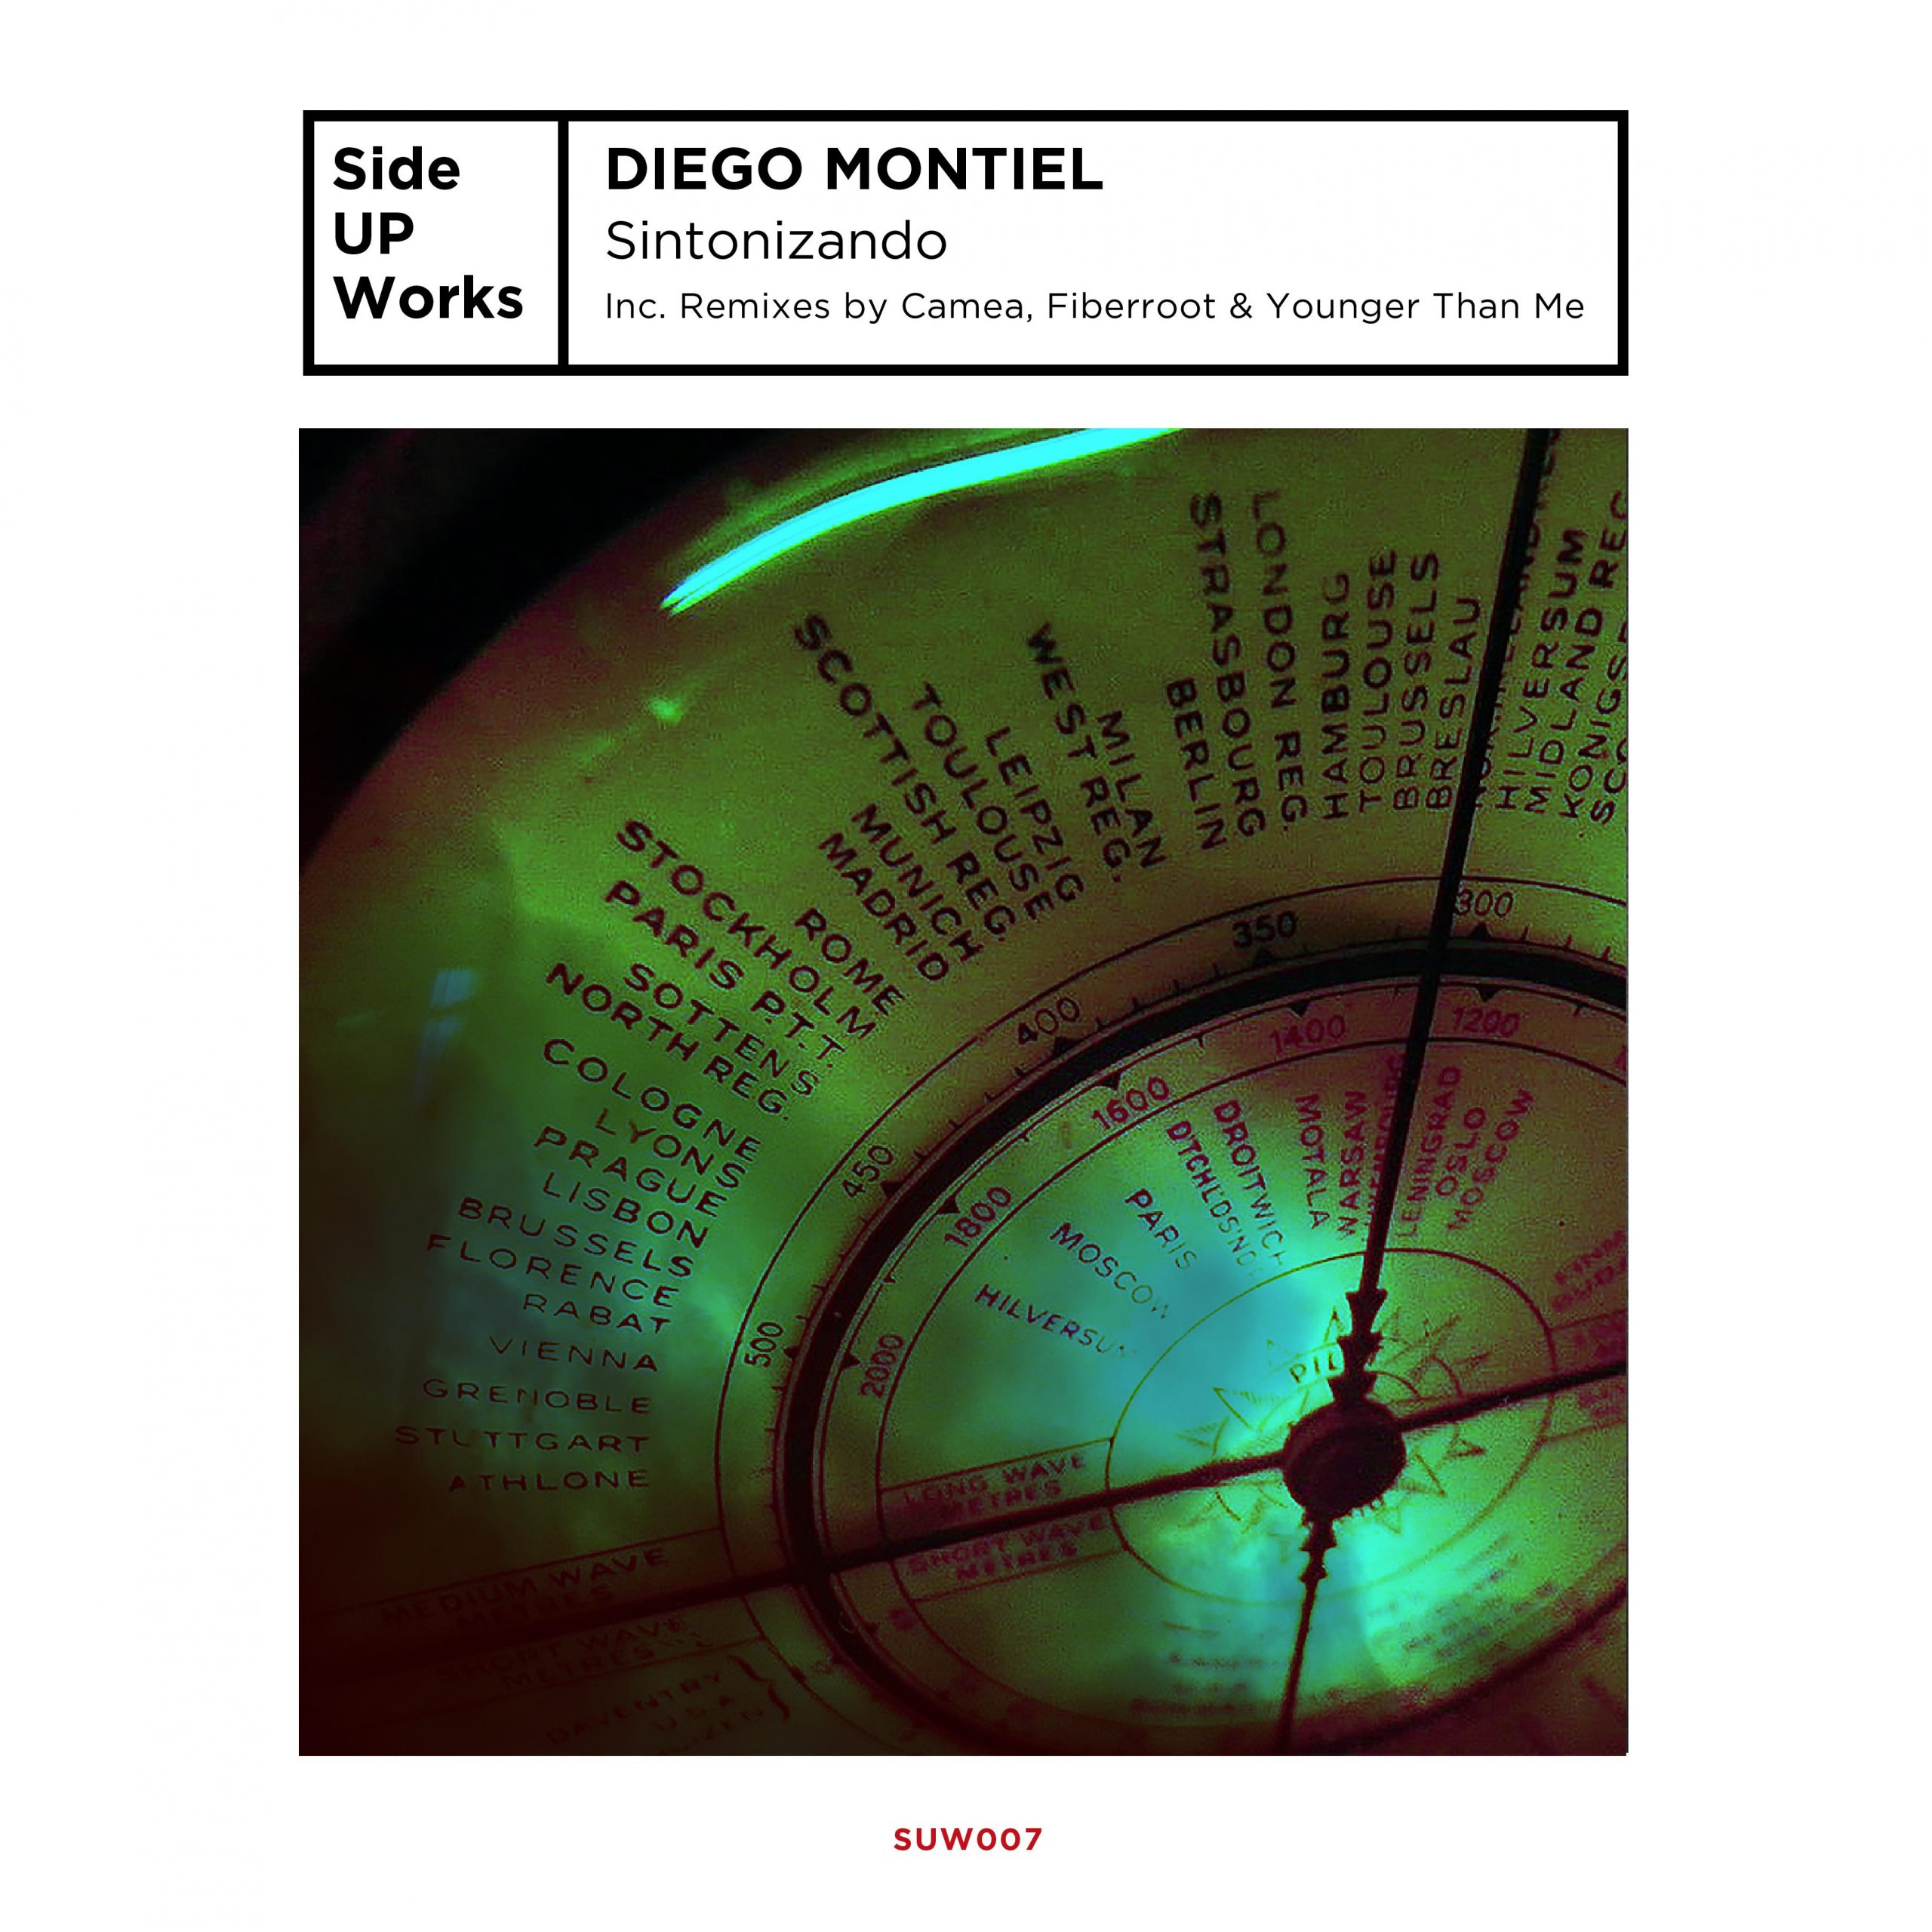 PREMIERE: Diego Montiel - Sintonizando (Original Mix) [Side UP Works]